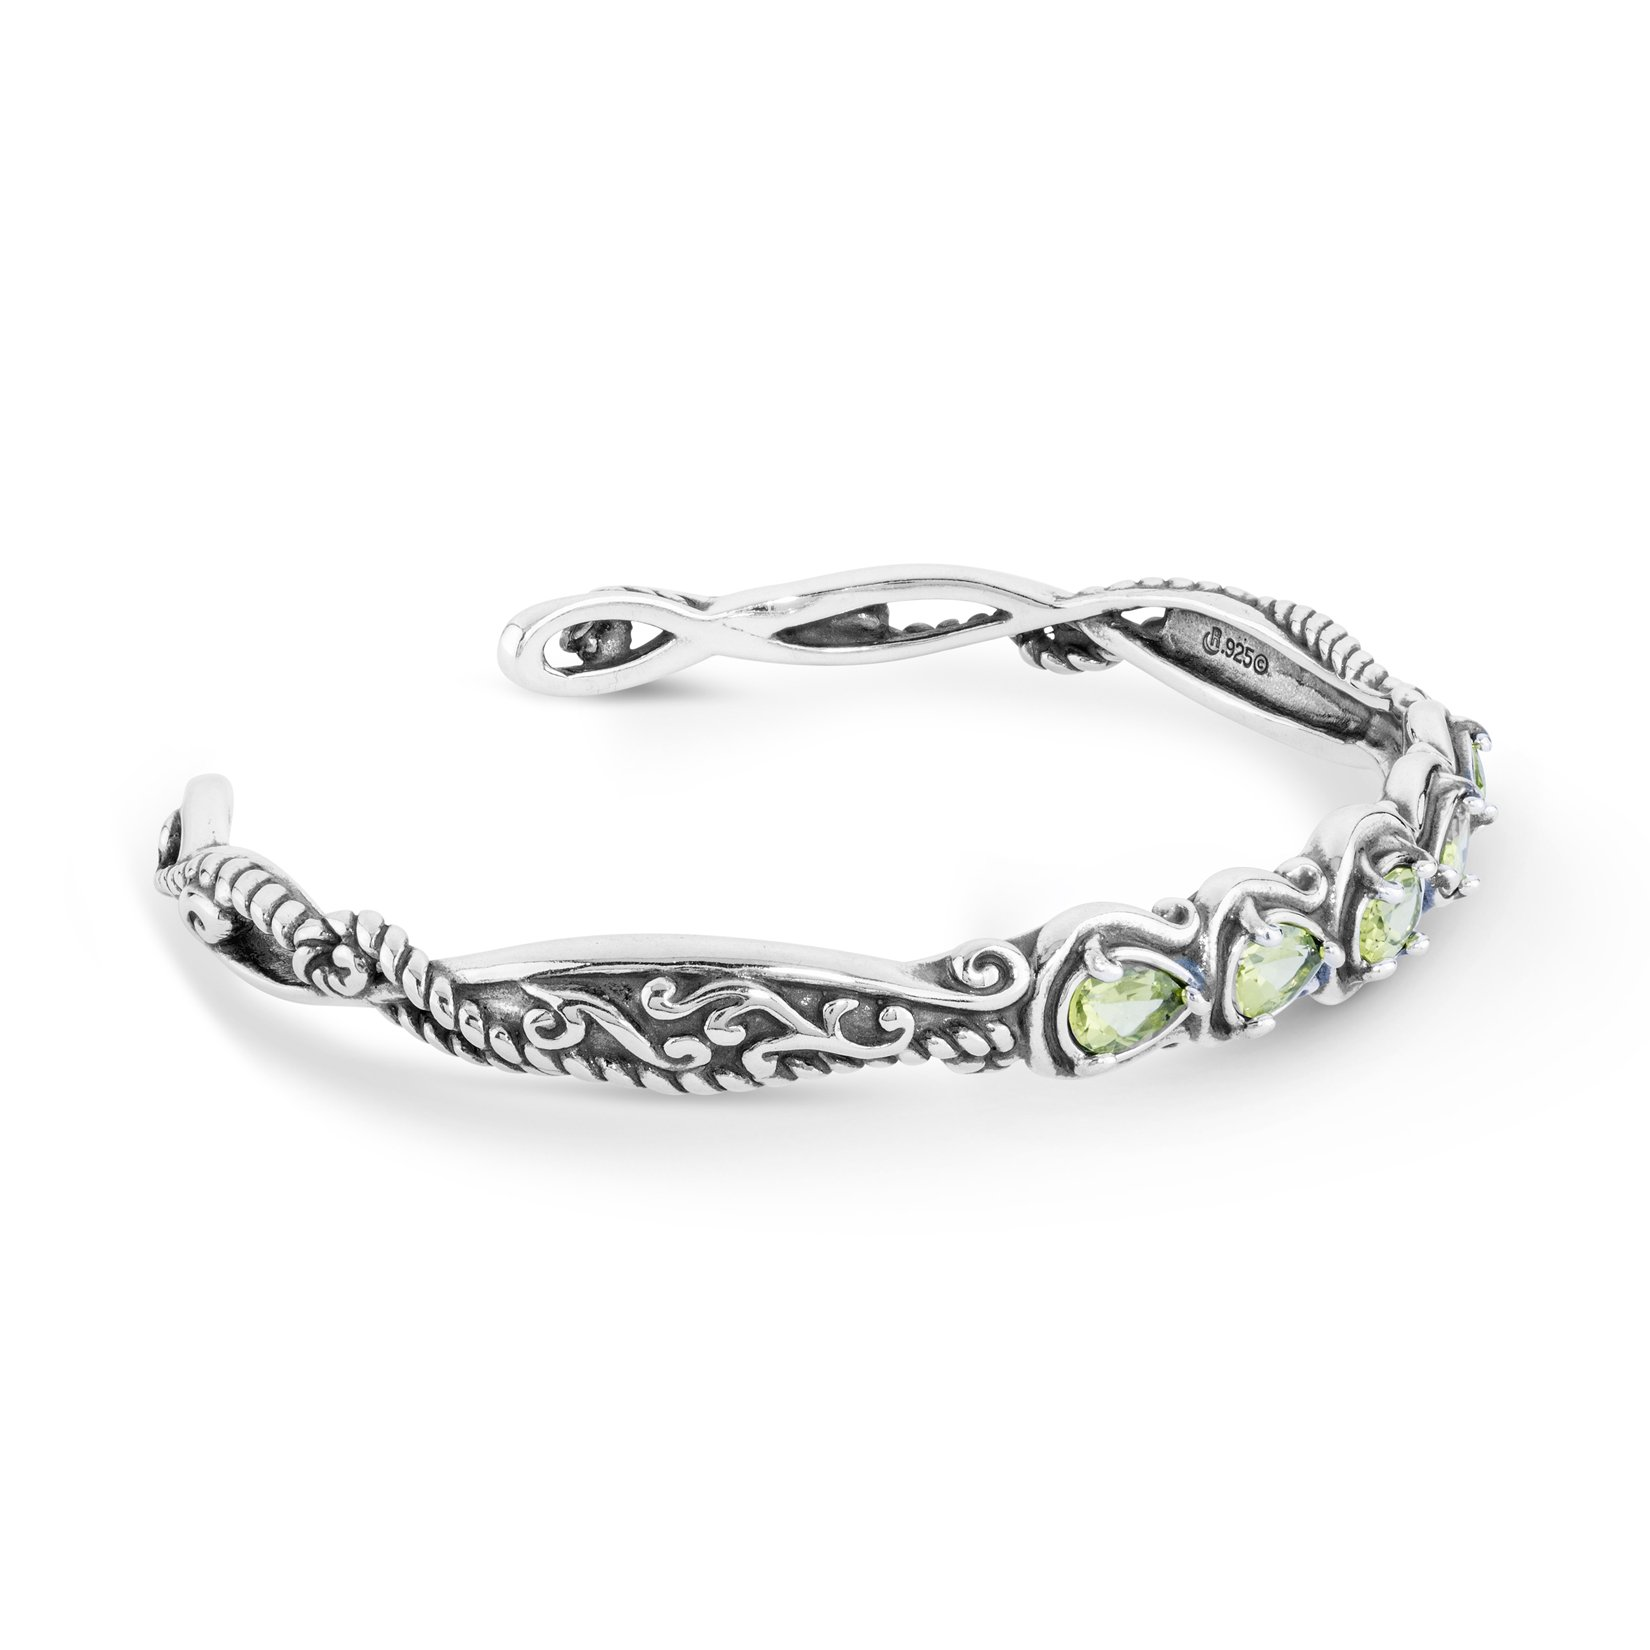 Simply Fabulous Sterling Silver & Faceted Peridot Five Stone Cuff Bracelet- Large - Simply Fabulous Collection